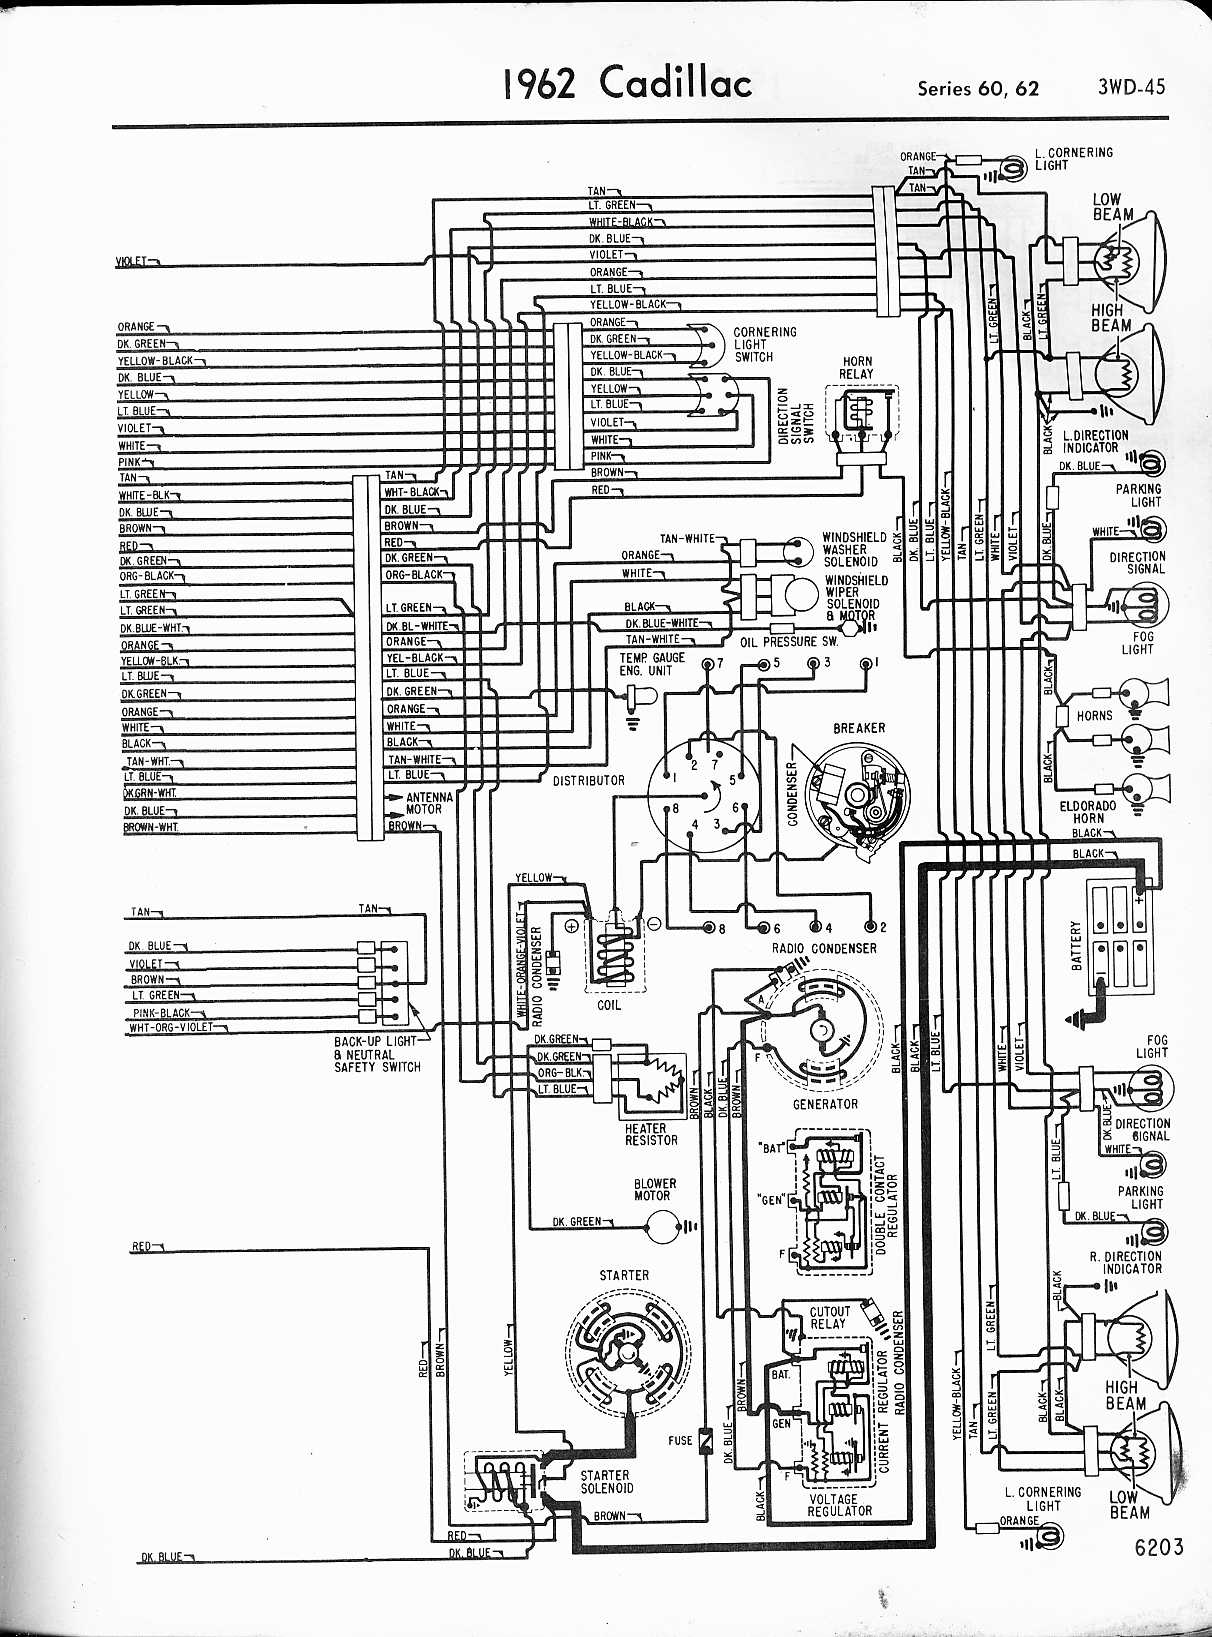 1955 cadillac wiring diagram 1955 wiring diagrams online 1962 series 60